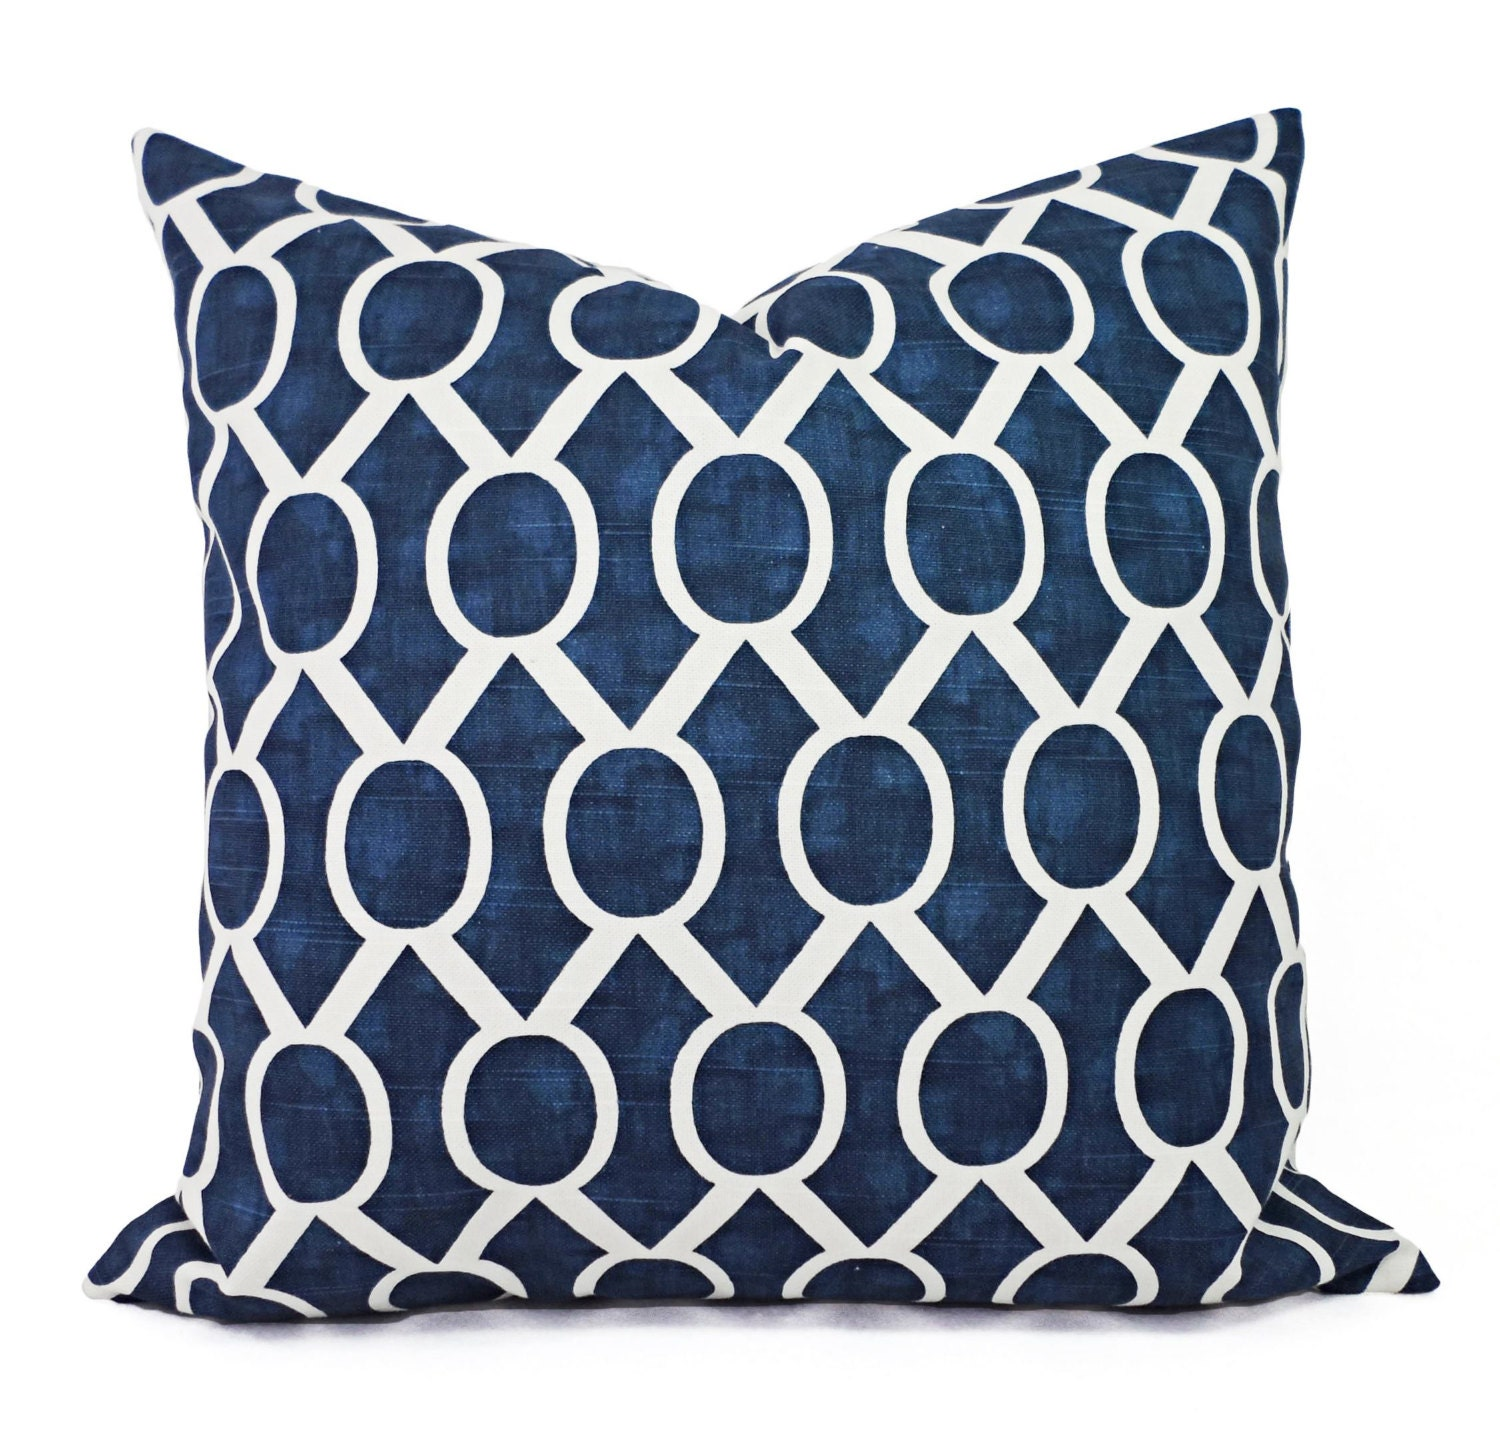 Navy Blue And Gold Decorative Pillows : Navy Blue Decorative Pillows Two Navy Throw by CastawayCoveDecor